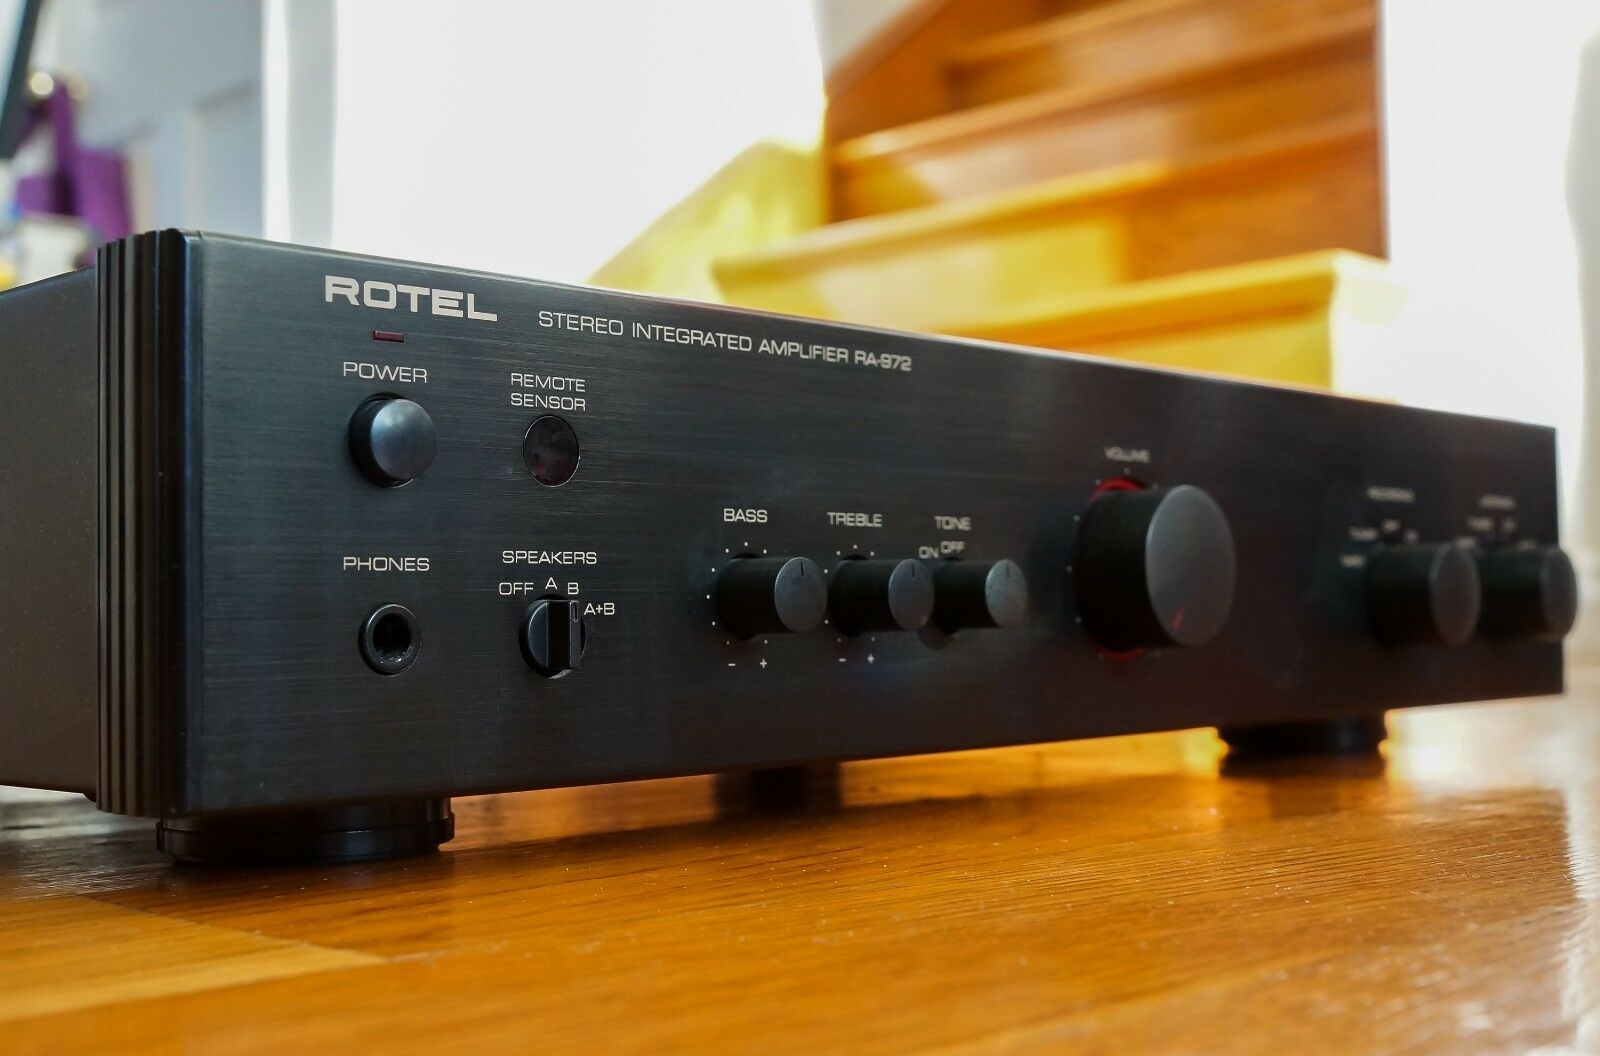 Rotel Ra 972 Integrated Amplifier Mint Or Excellent Condition 1520 1 Of 9 See More